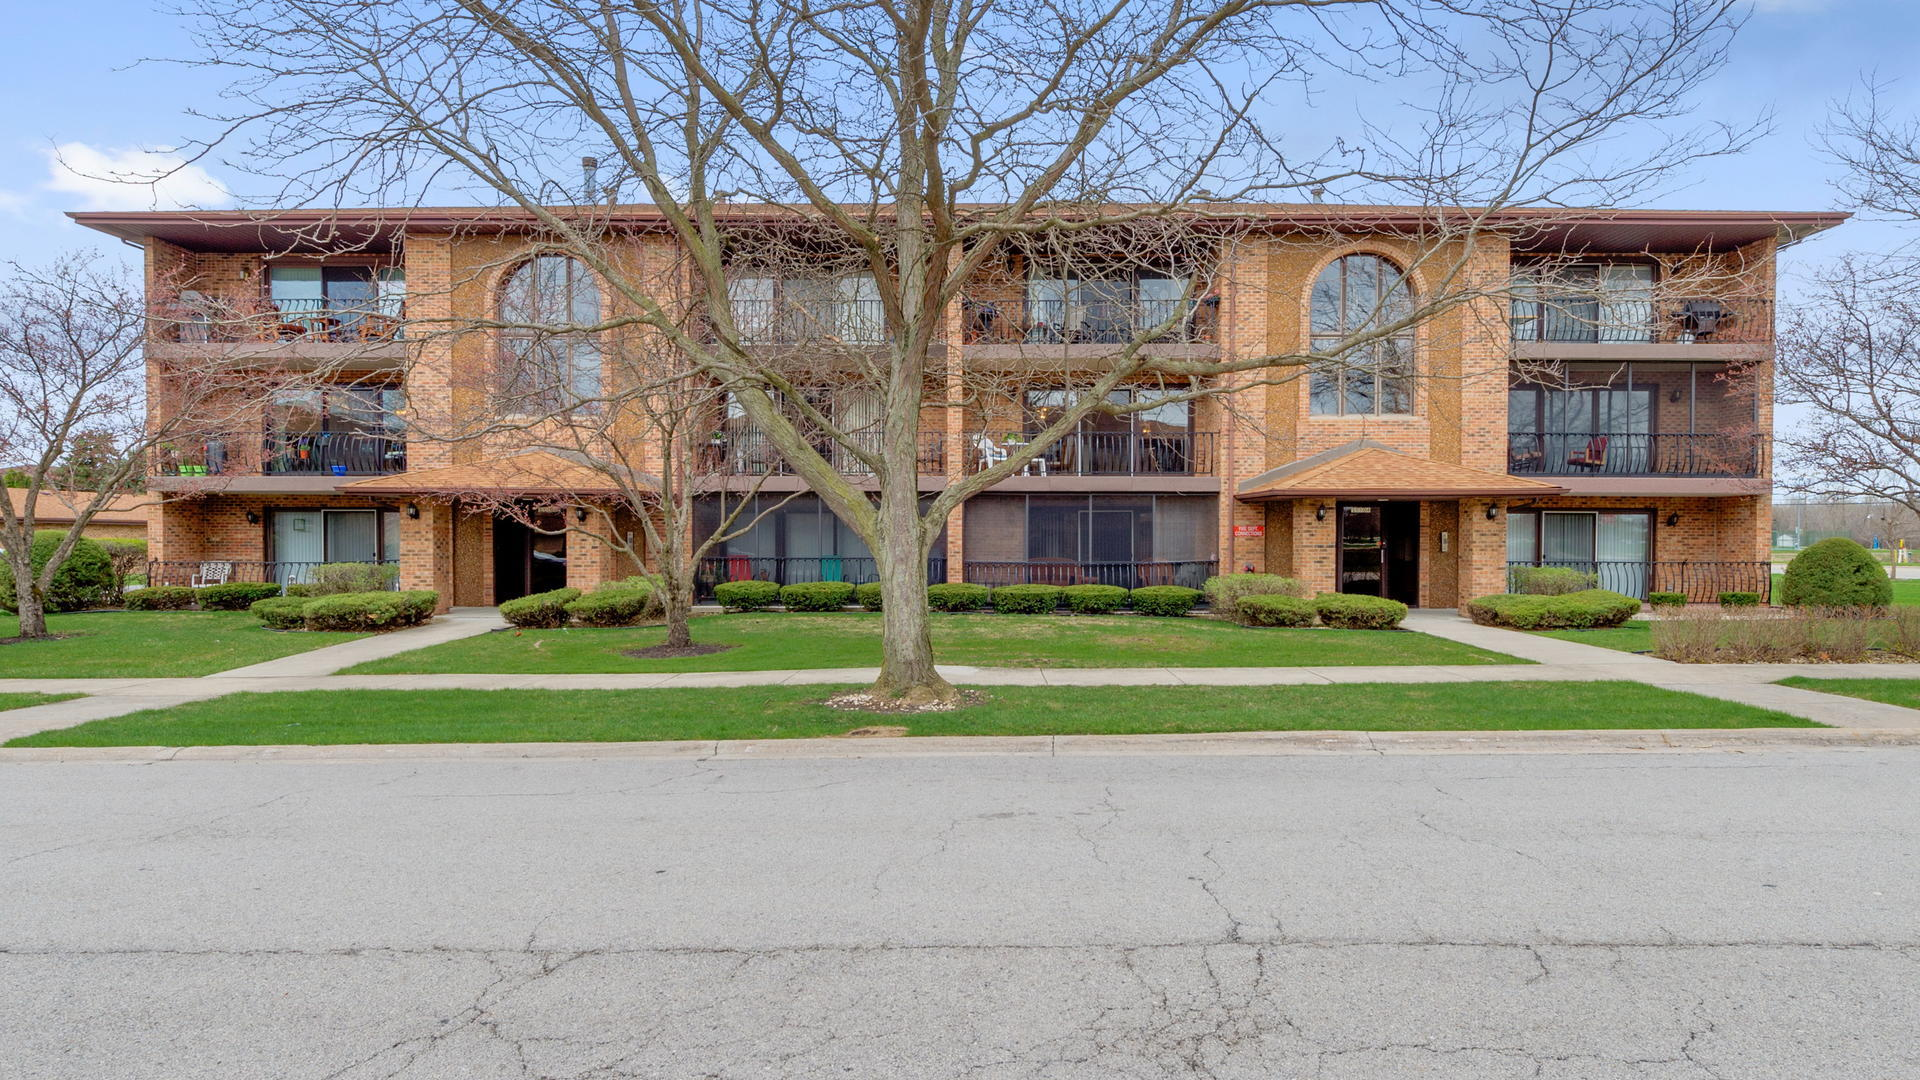 Property for sale at PALOS HILLS,  Il 60465